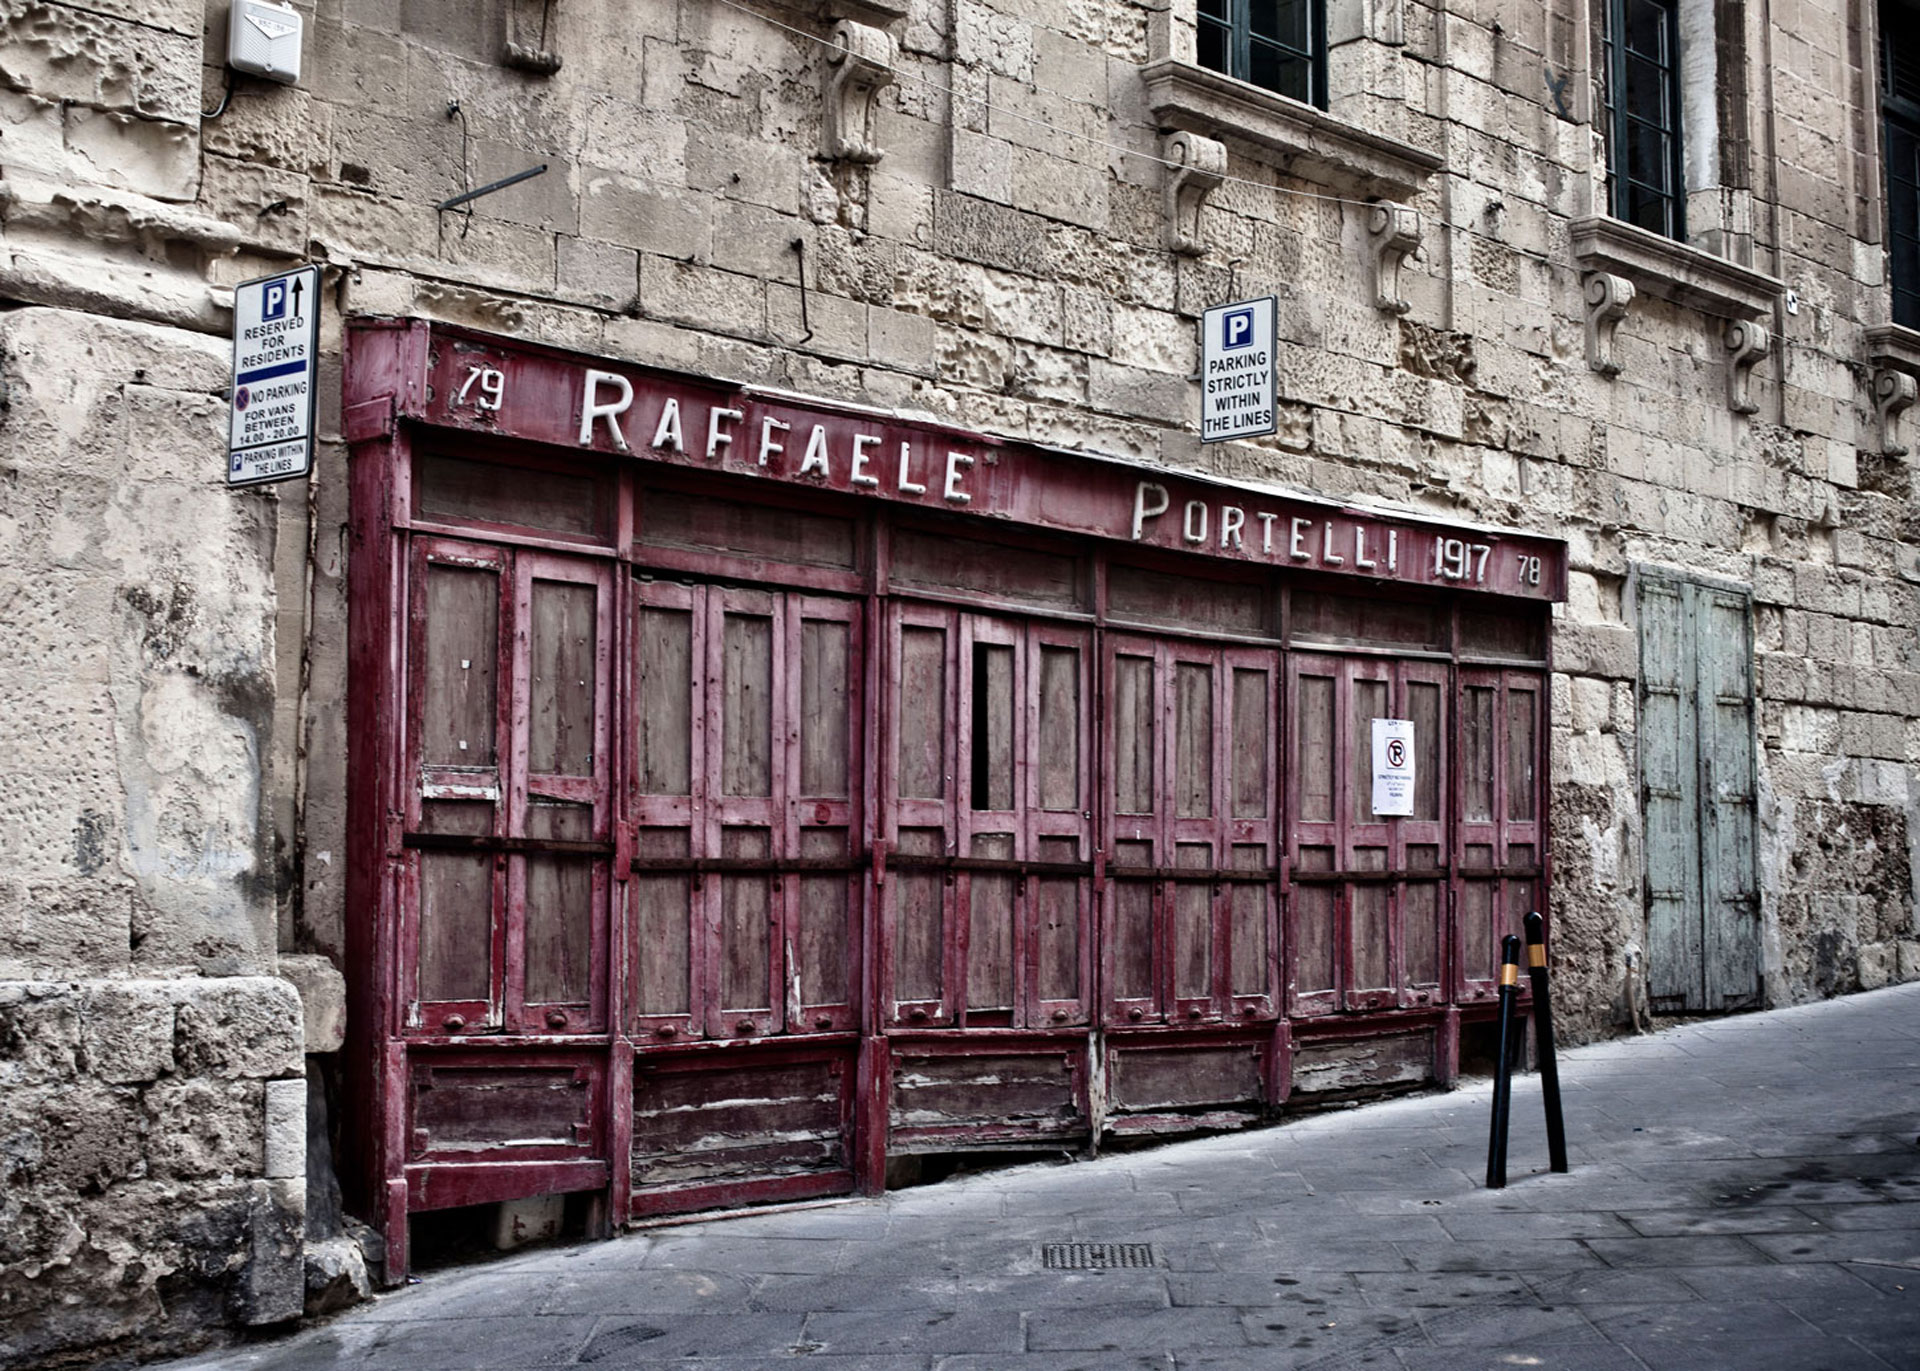 Disappearing Malta - doors and facades ©Helen Jones-Florio. 'Raffaele Portelli, 1917', Merchant St, Valletta